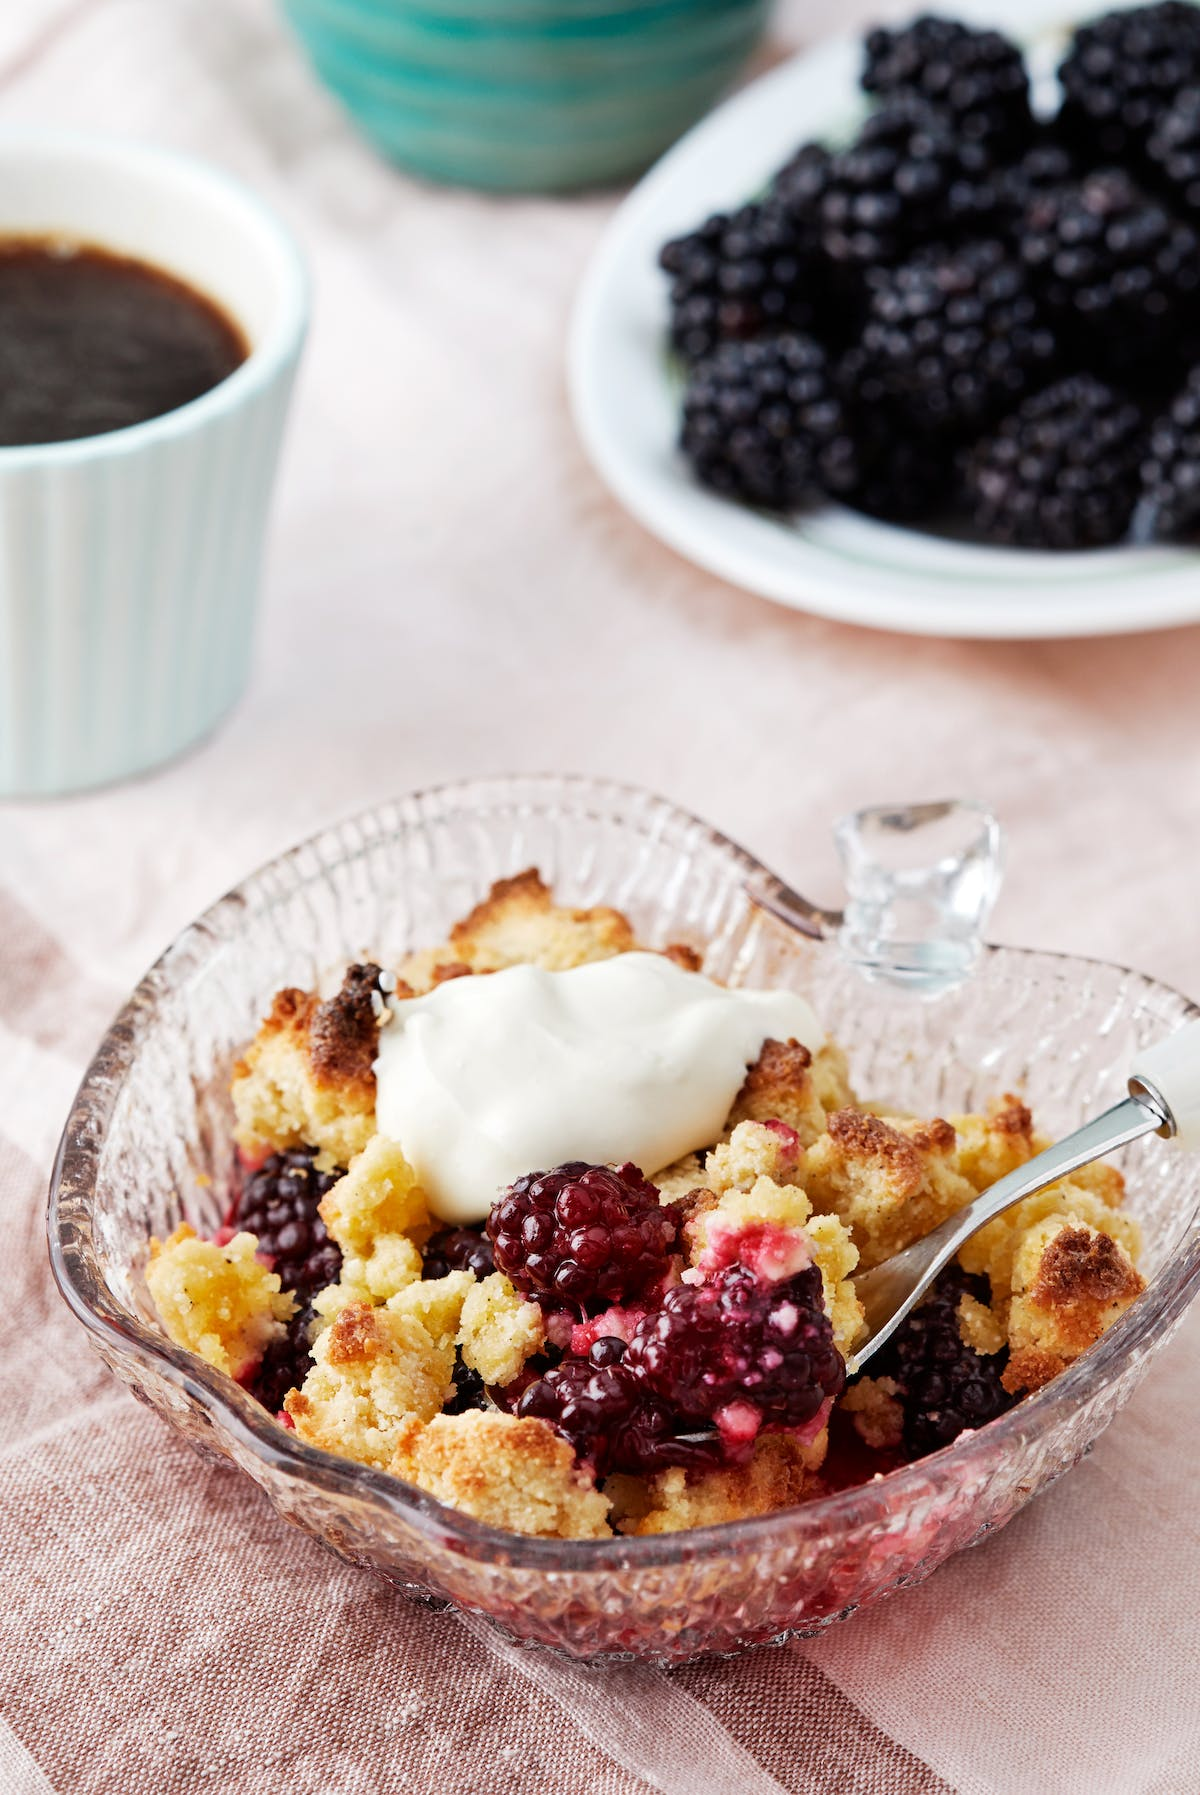 Low-carb blackberry cobbler